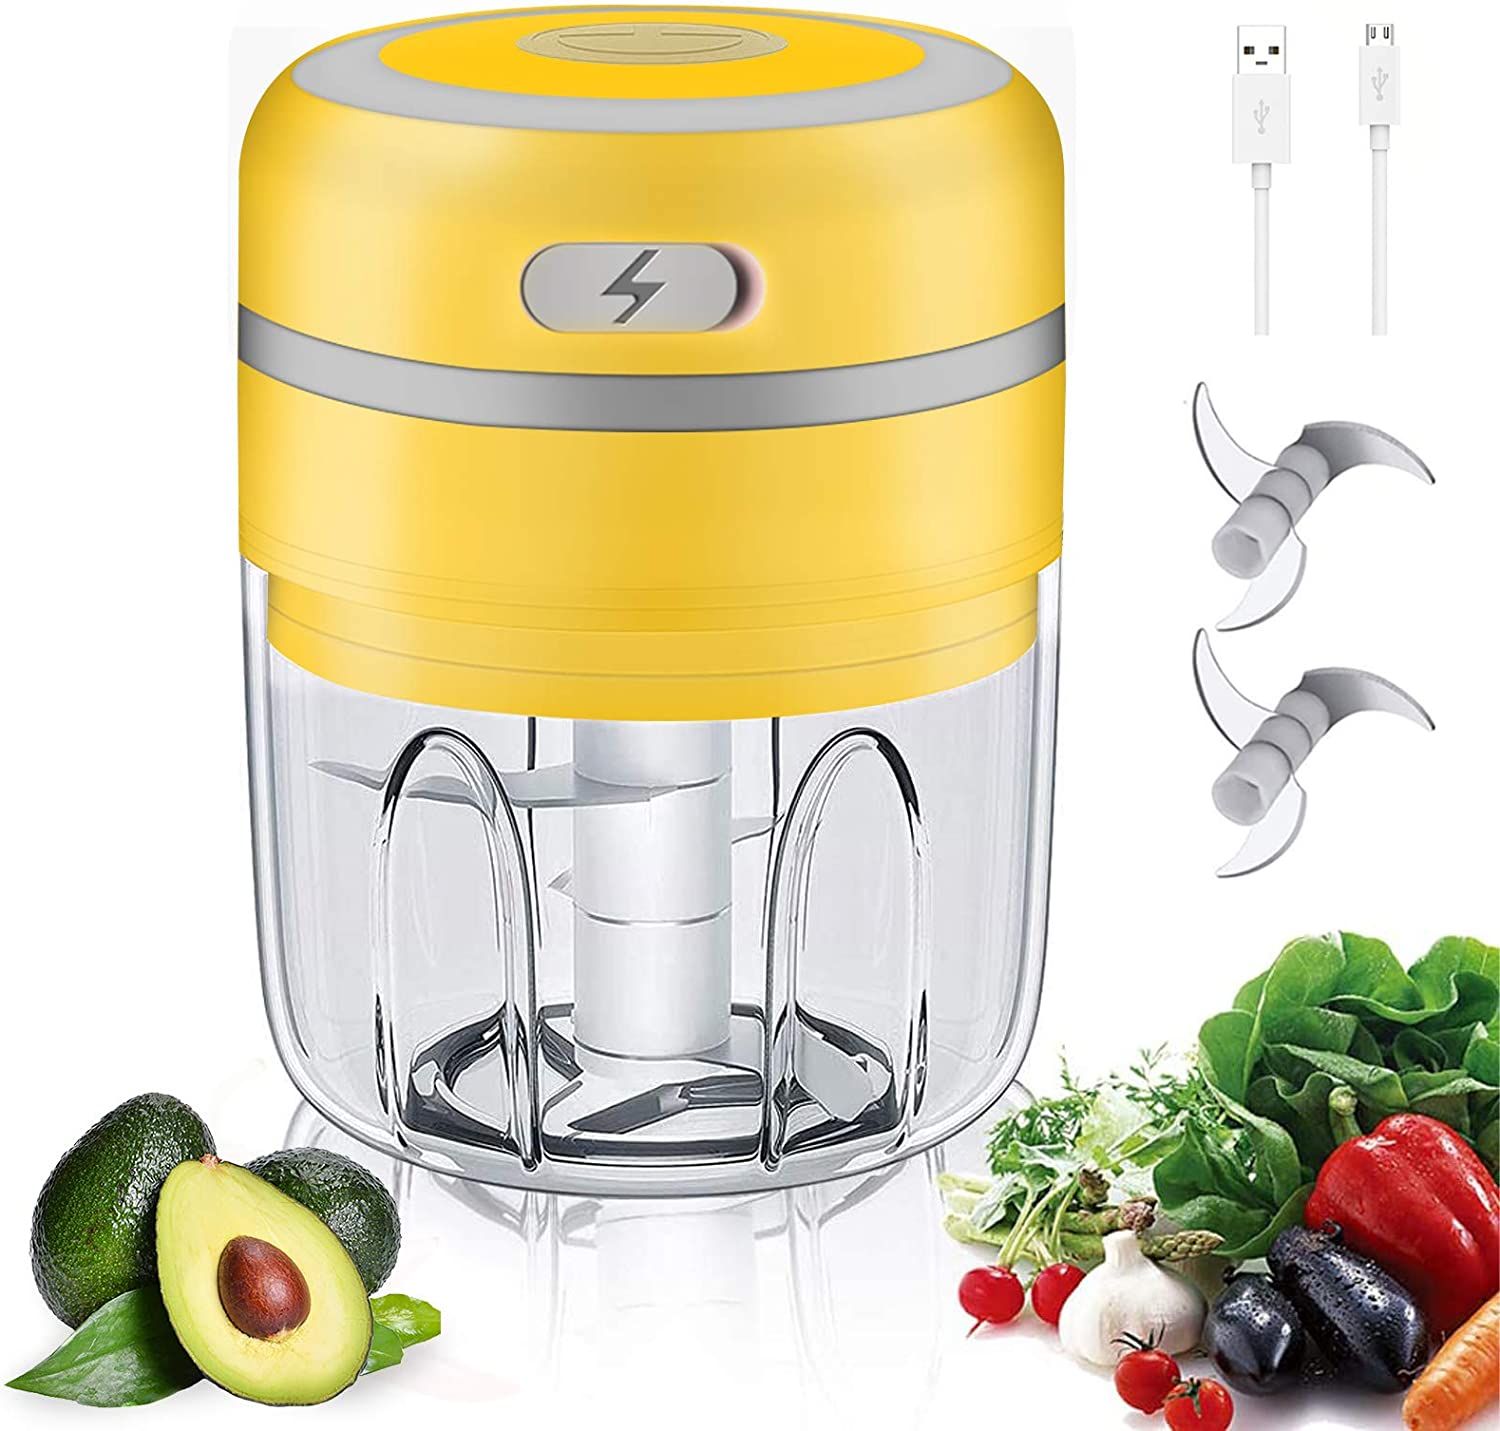 Electric Mini Garlic Chopper, Food Dicers Food Slicer Crusher Powerful Food Chopper 250ml Mini Usb Wireless Garlic Masher Press, Wireless Grinder with Improved Assembly, for Vegetables